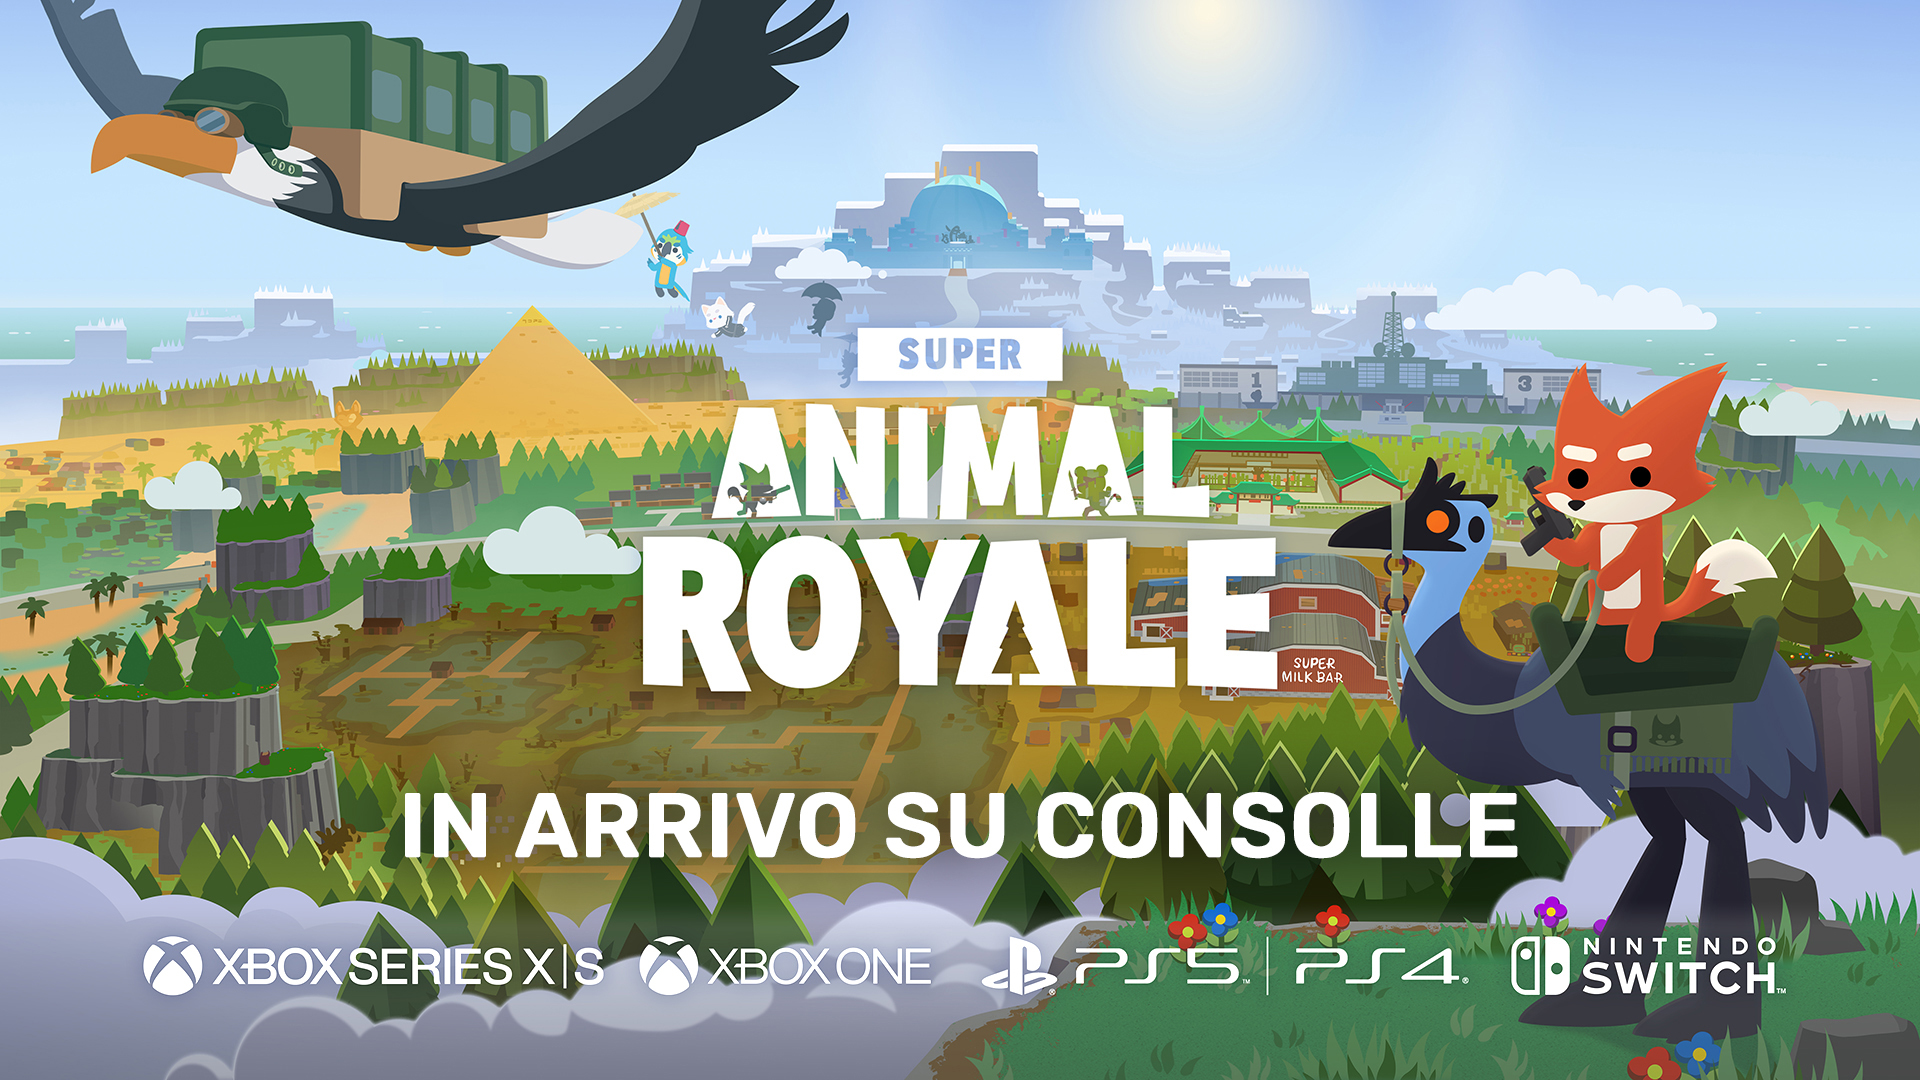 Super Animal Royale in arrivo su console